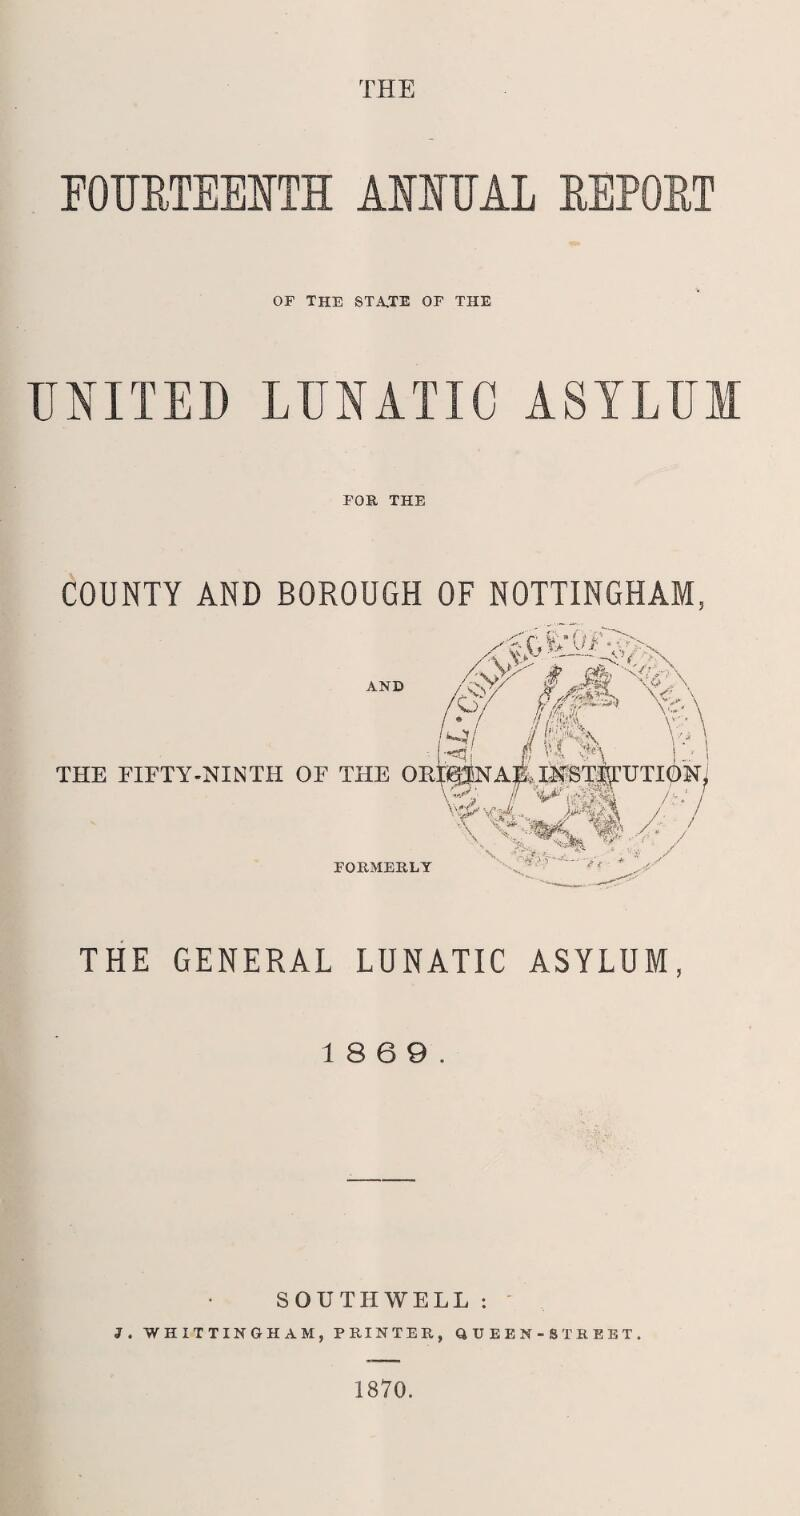 THE FOURTEENTH ANNUAL REPORT OF THE STA,TE OF THE UNITED LUNATIC ASYLUM FOB, THE COUNTY AND BOROUGH OF NOTTINGHAM, THE GENERAL LUNATIC ASYLUM, 18 6 9. SOUTHWELL : J. WHITTINGHAM, PRINTER, QUEEN-STBEBT. 1870.